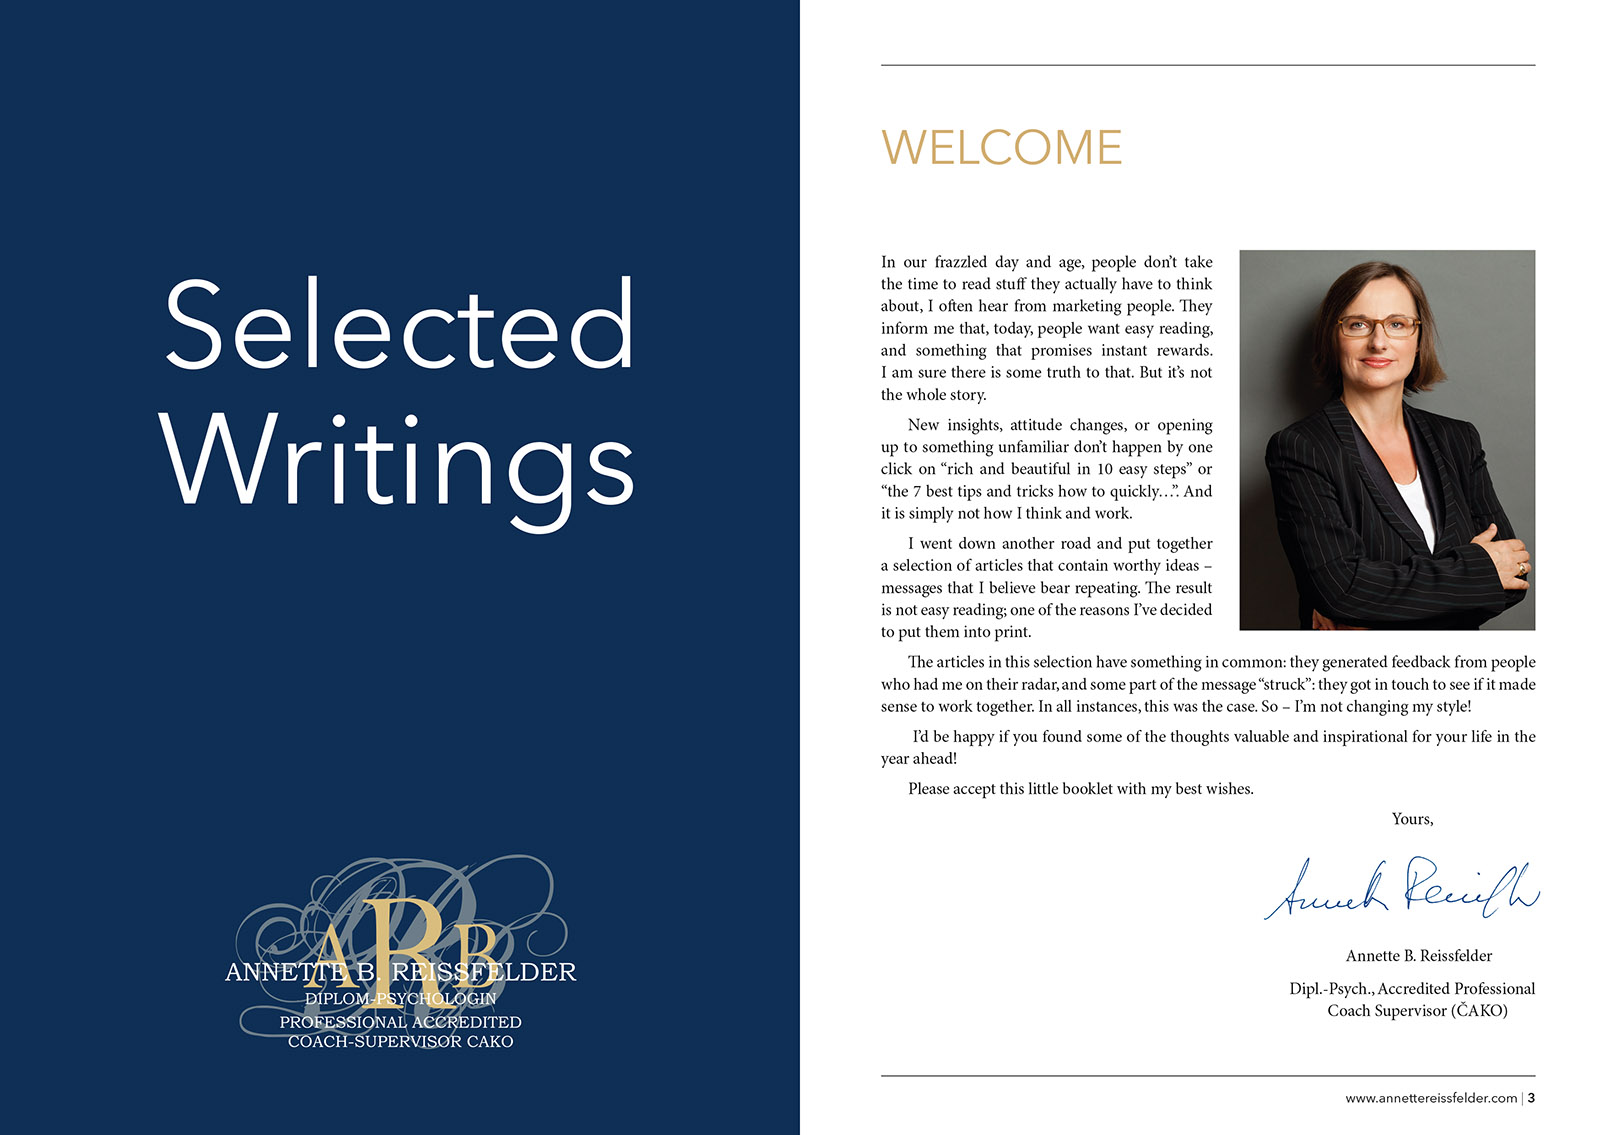 Selected Writings Brochure Preview